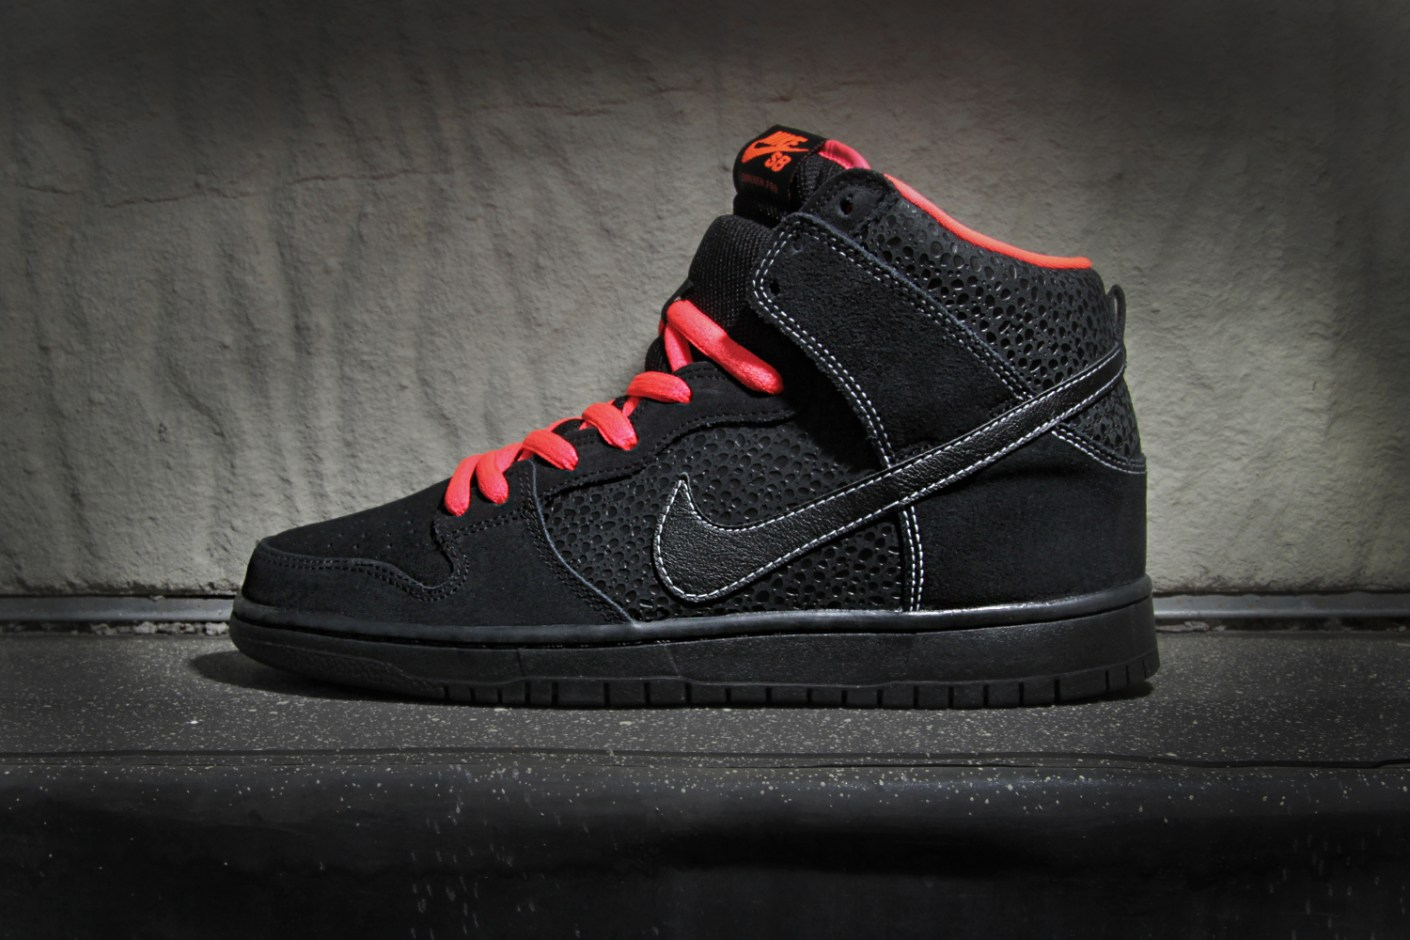 Image of Nike SB Dunk High Pro Black/Atomic Red